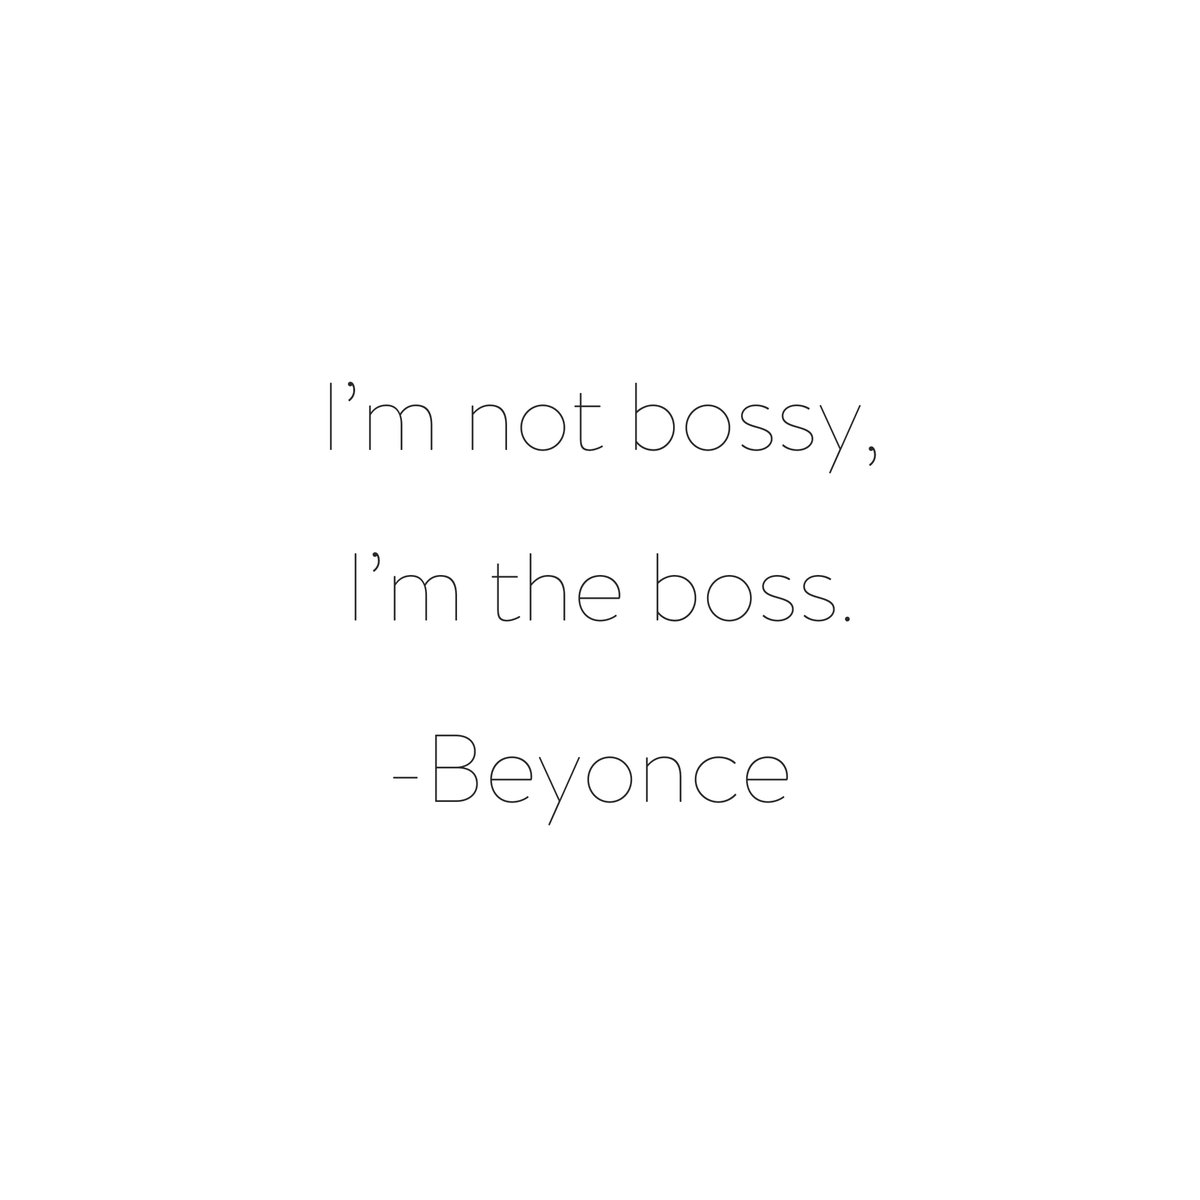 You go girl. #WomensEqualityDay http://t.co/xZfTxsIhSF